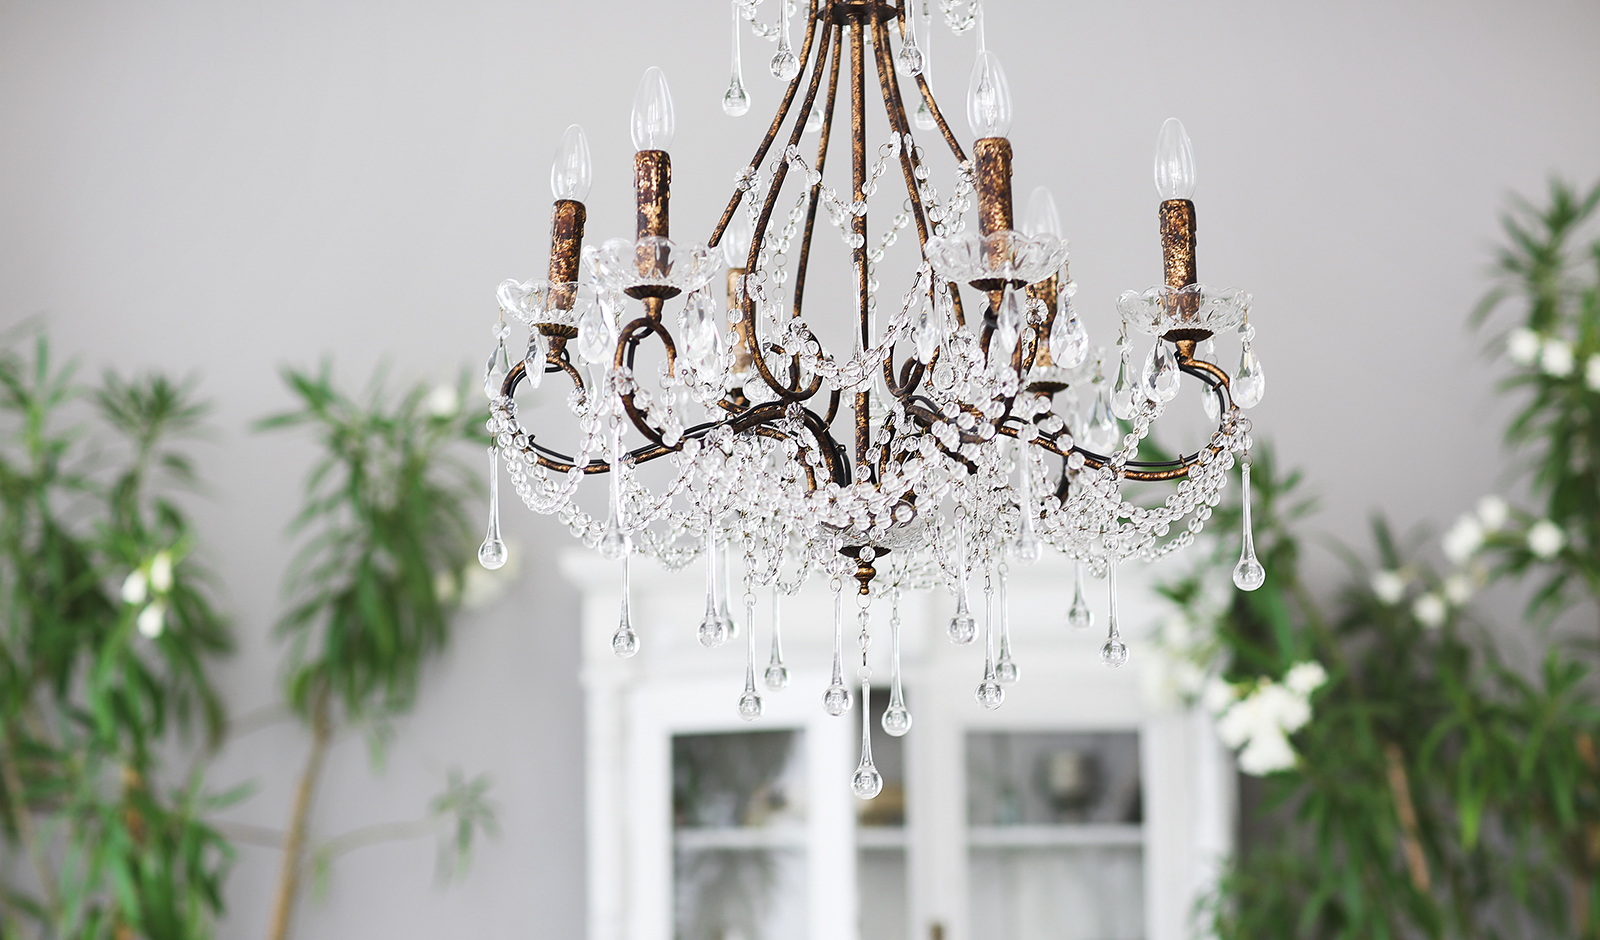 budget-decor-ideas-for-art-lovers-chandelier-in-home-main-image.